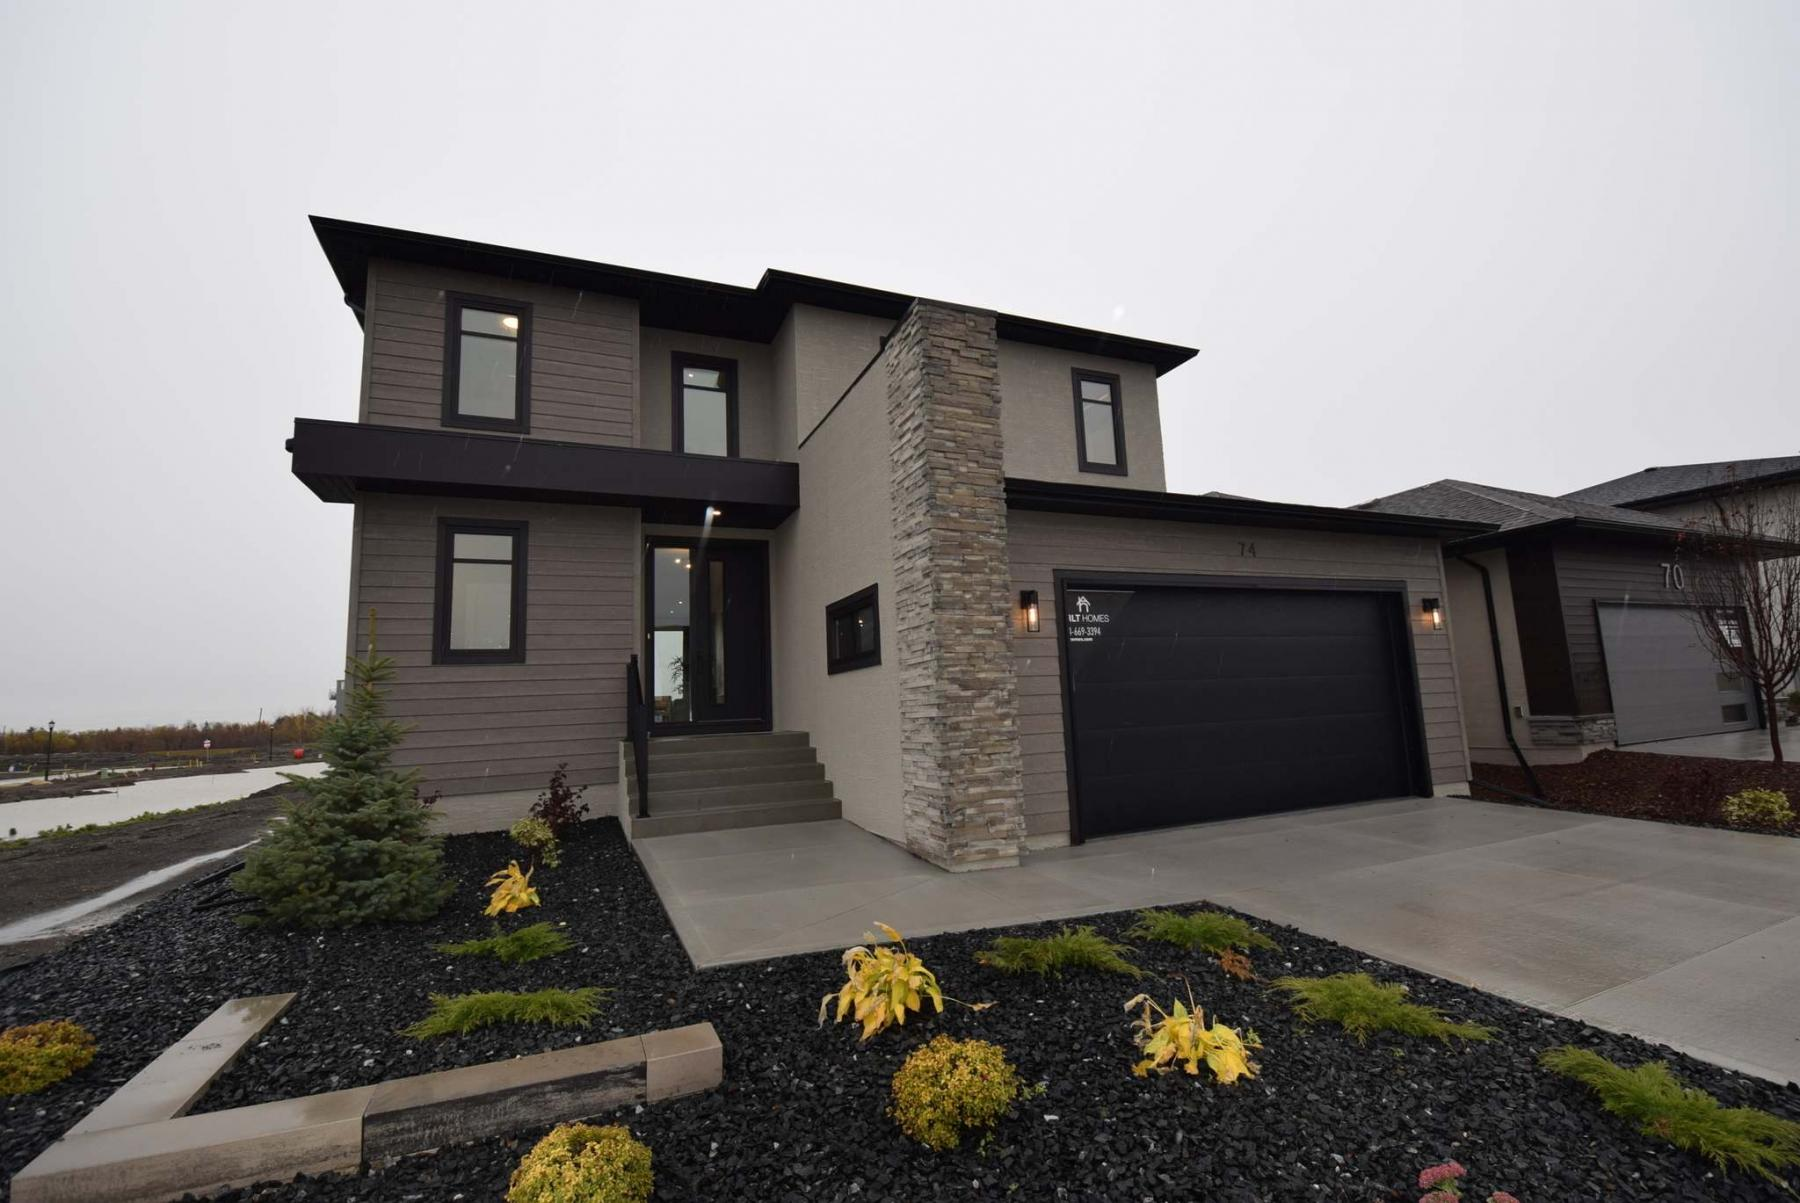 <p>Photos by Todd Lewys / Winnipeg Free Press</p><p>Jason Arlt of Arlt Homes says 74 Tanager Trail, with a different play on a typical great-room layout inside, turned out even better than planned.</p>